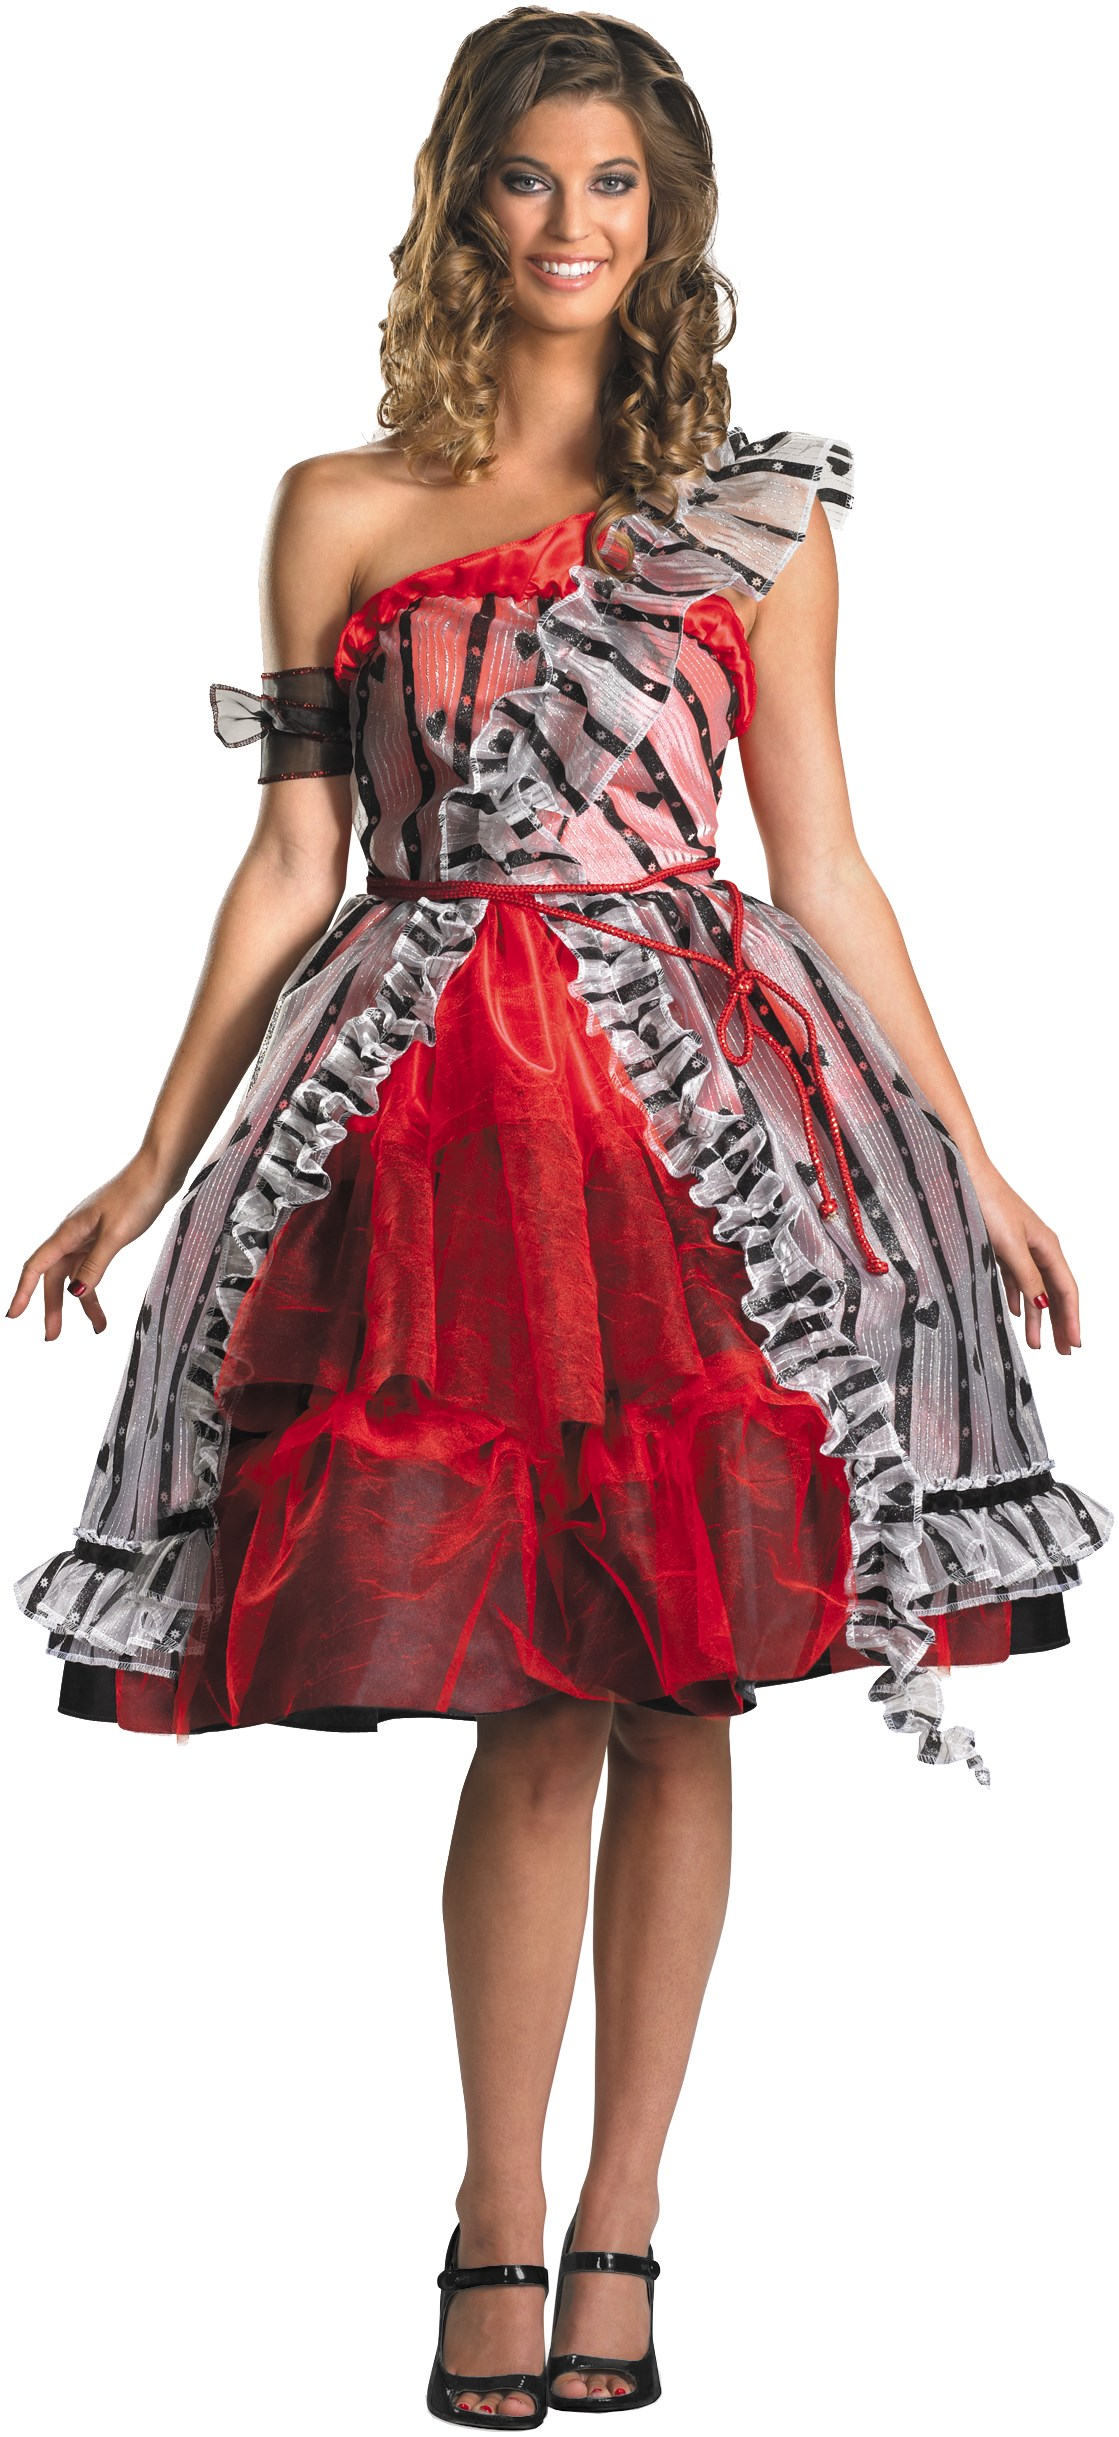 Alice In Wonderland - Alice Red Court Dress Adult Costume | BuyCostumes.com